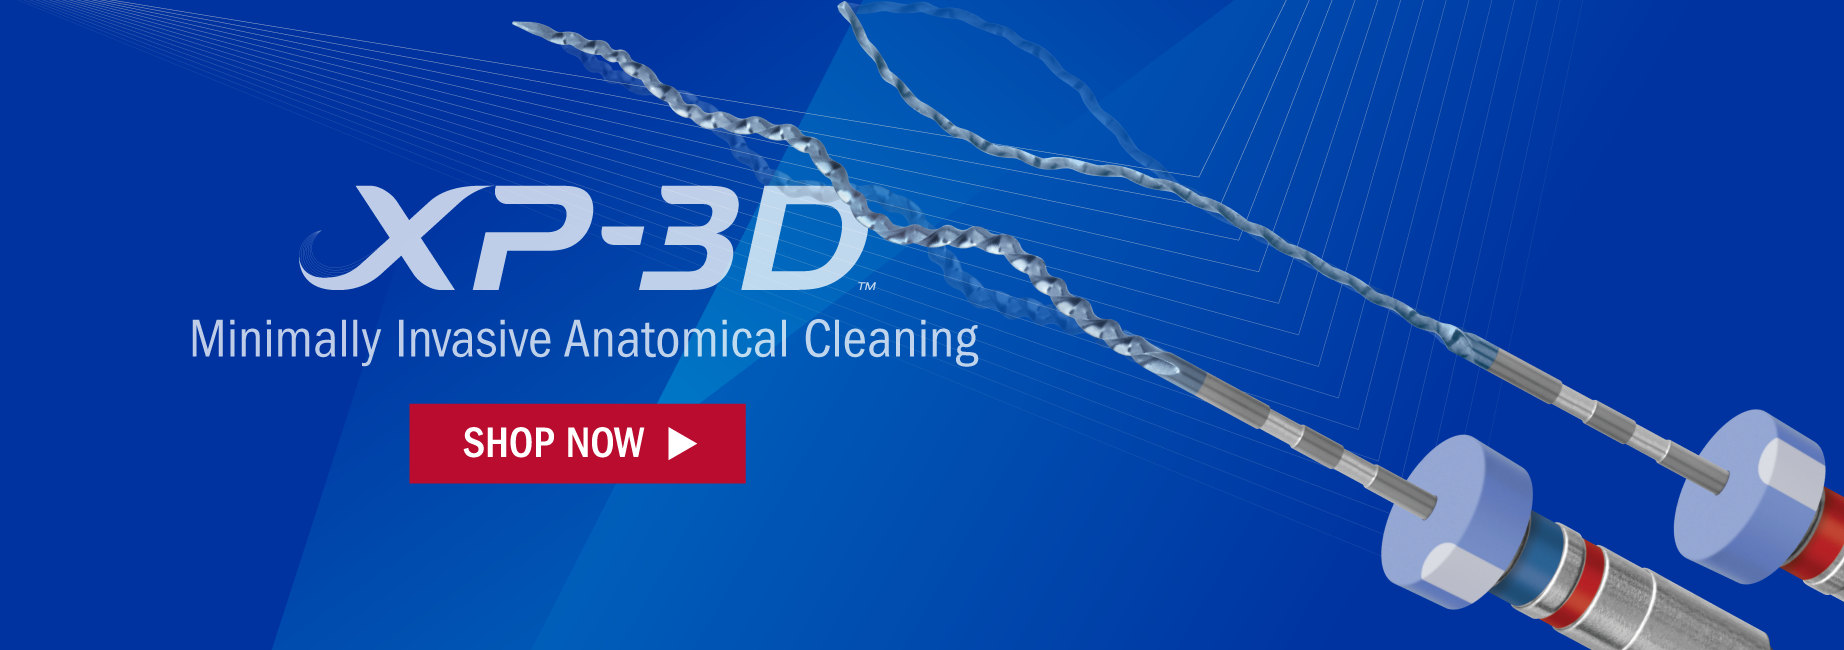 XP-3D Endodontic Instrumentation. Minimally Invasive Anatomical Cleaning